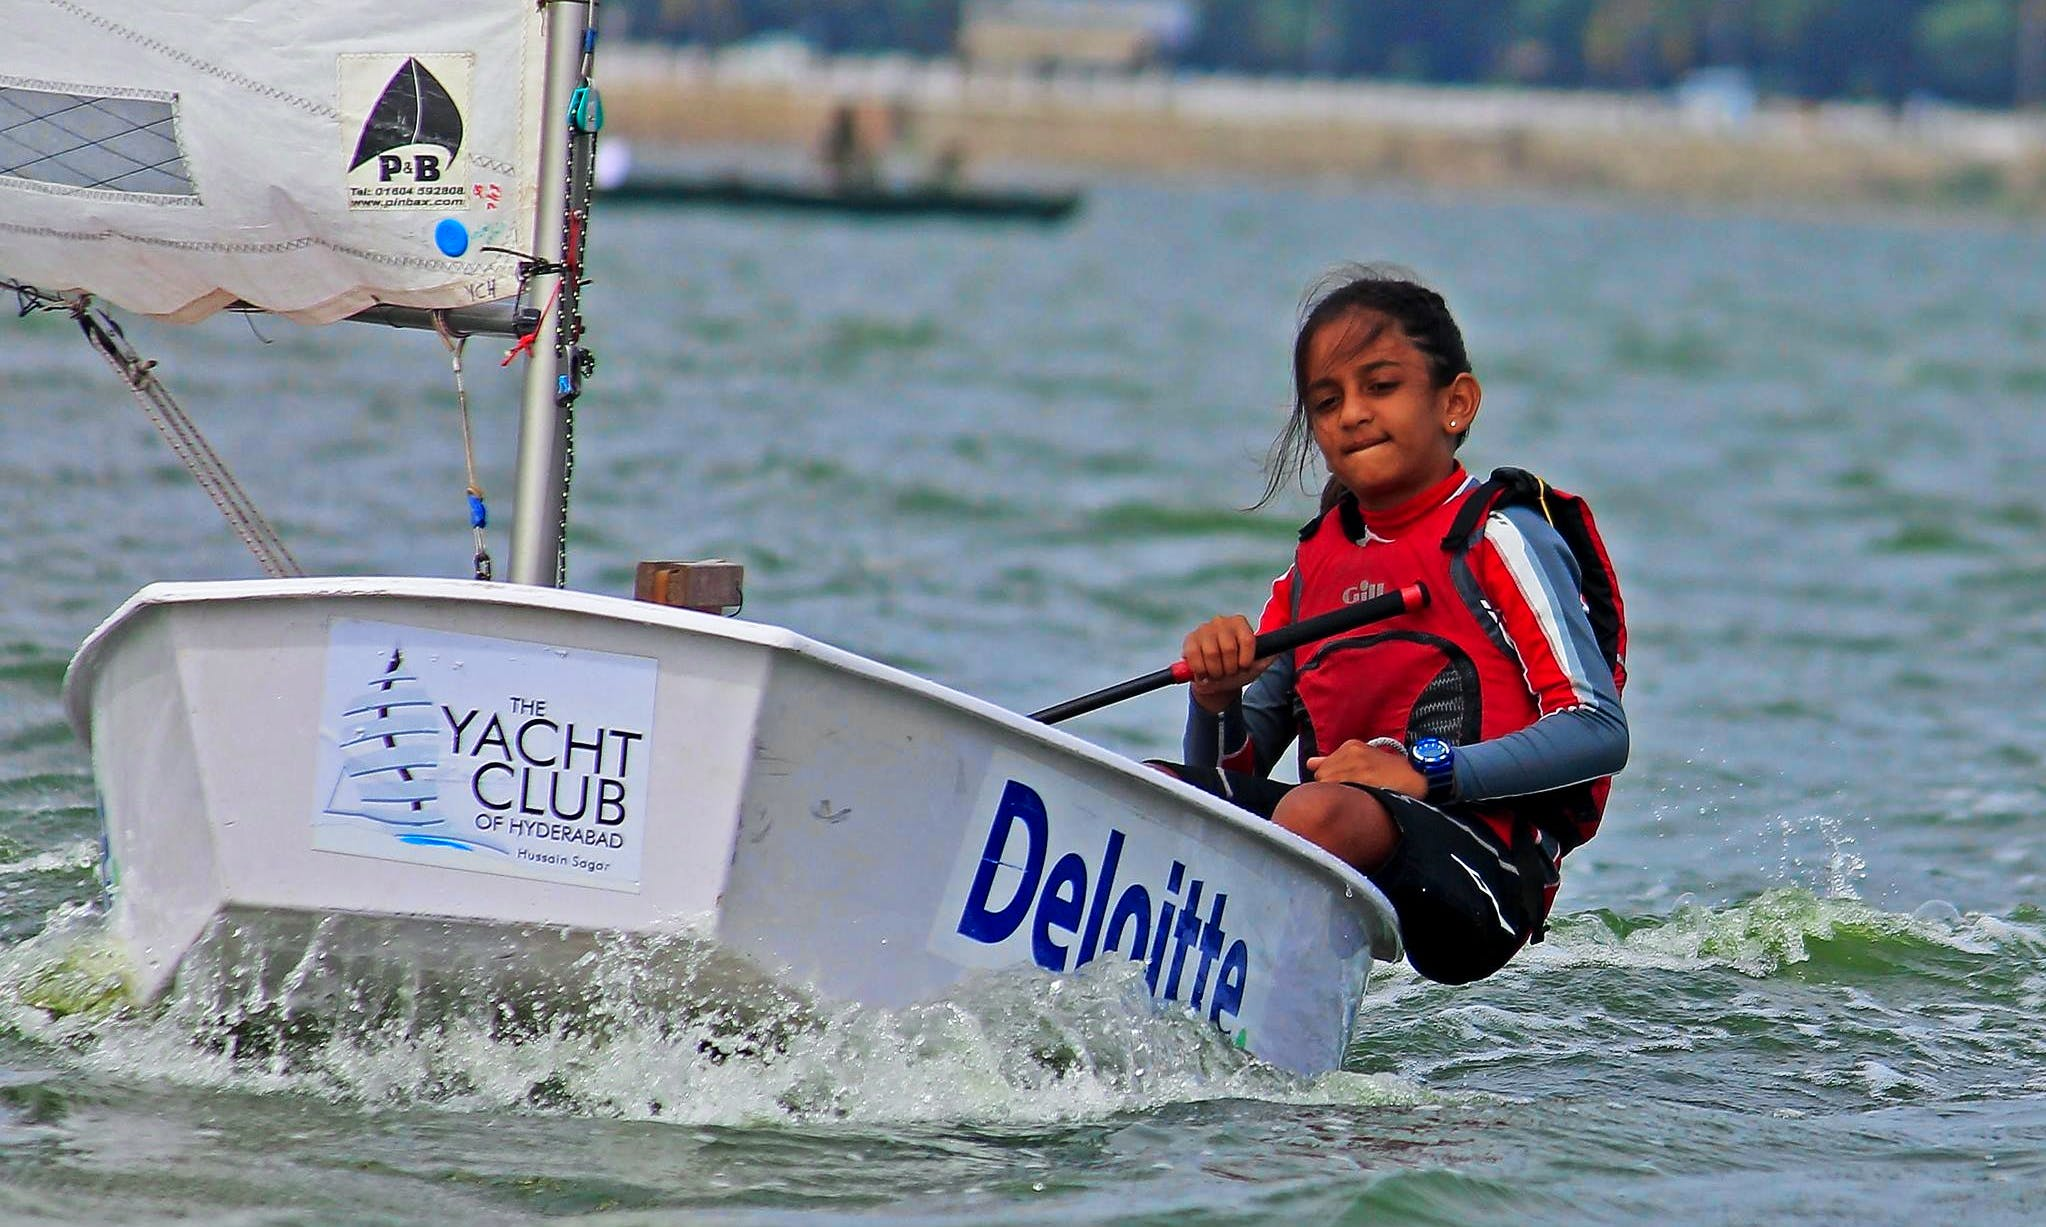 'Optimists' Sailing Lessons in Hyderabad